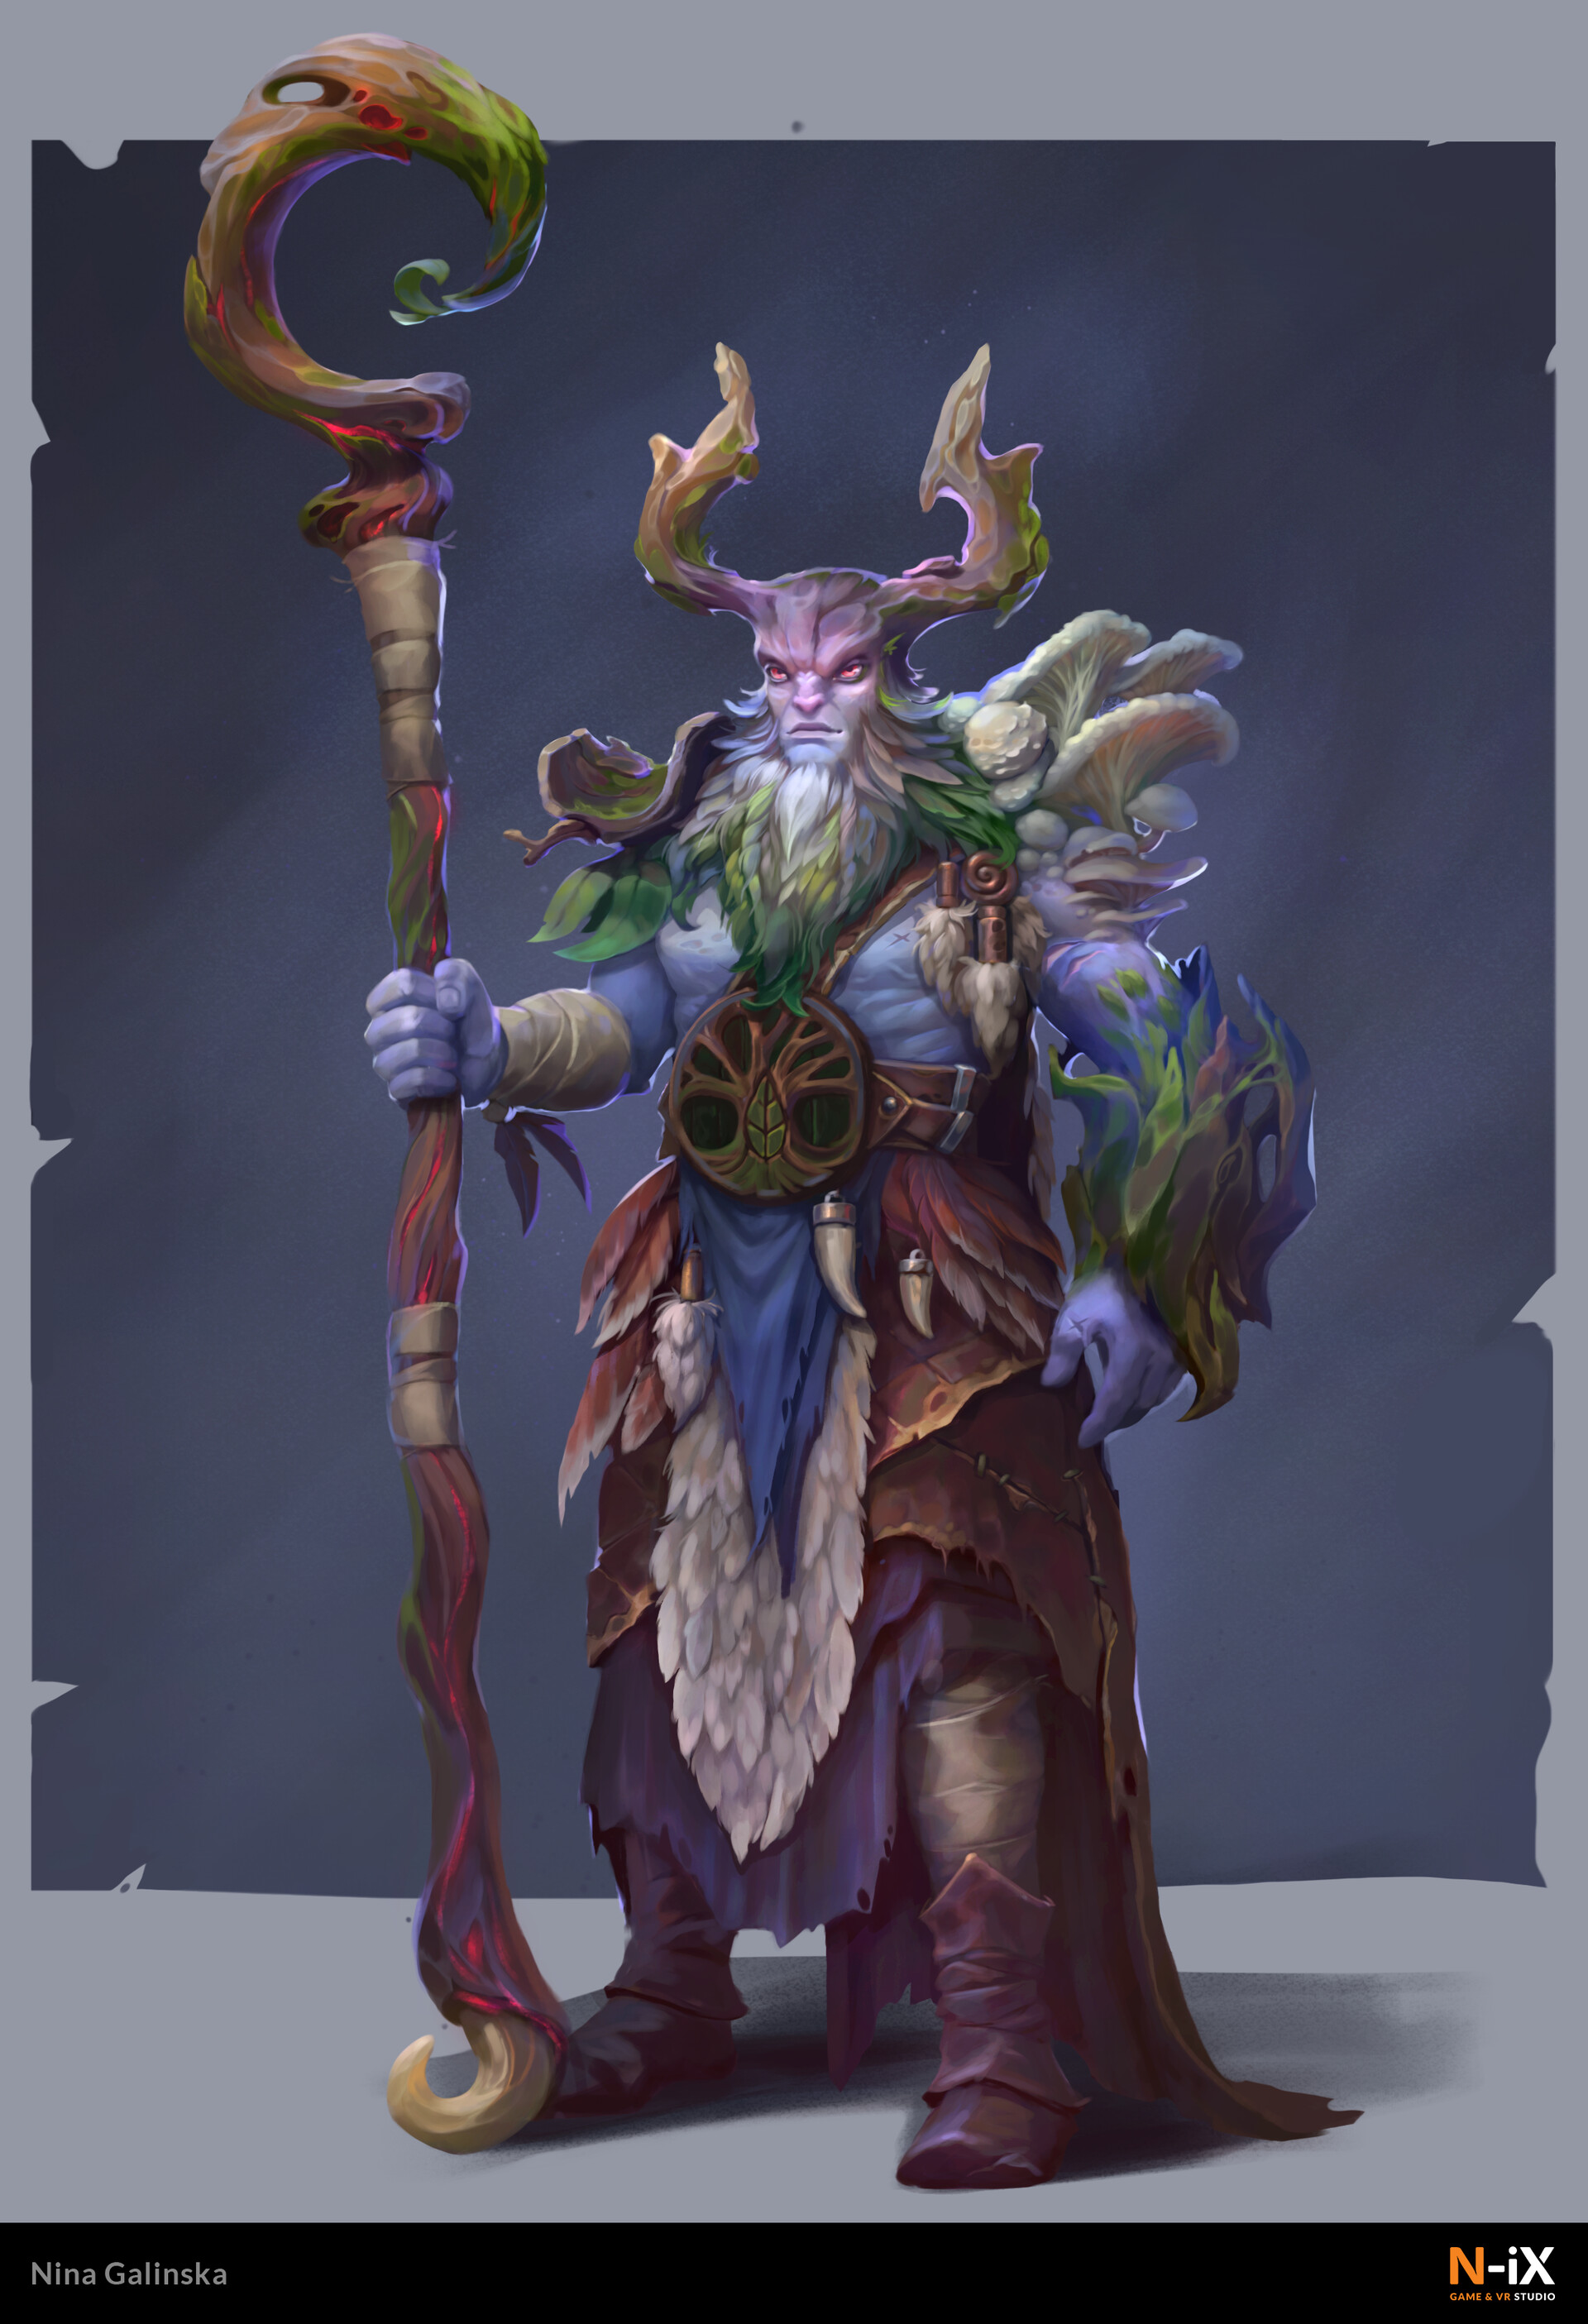 Druid character artwork